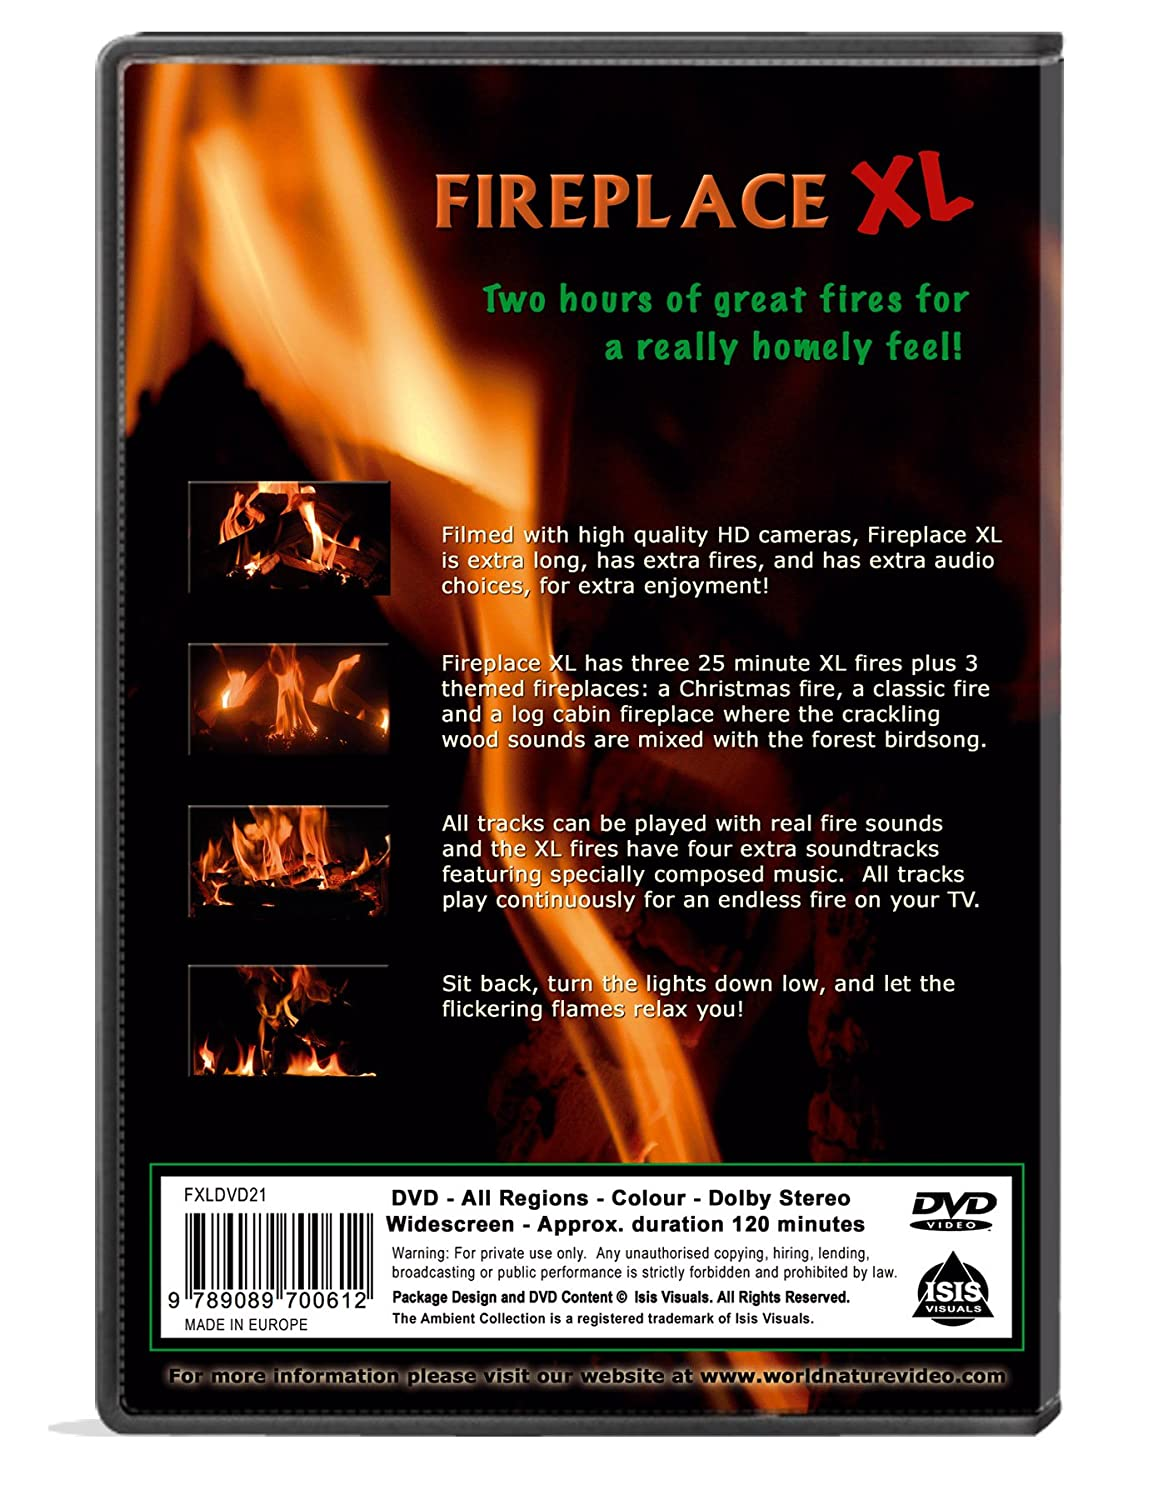 Amazon.com: Fire DVD - Fireplace XL - Extra Long Open Hearth Fires with Burning Wood Sounds: The Ambient Collection